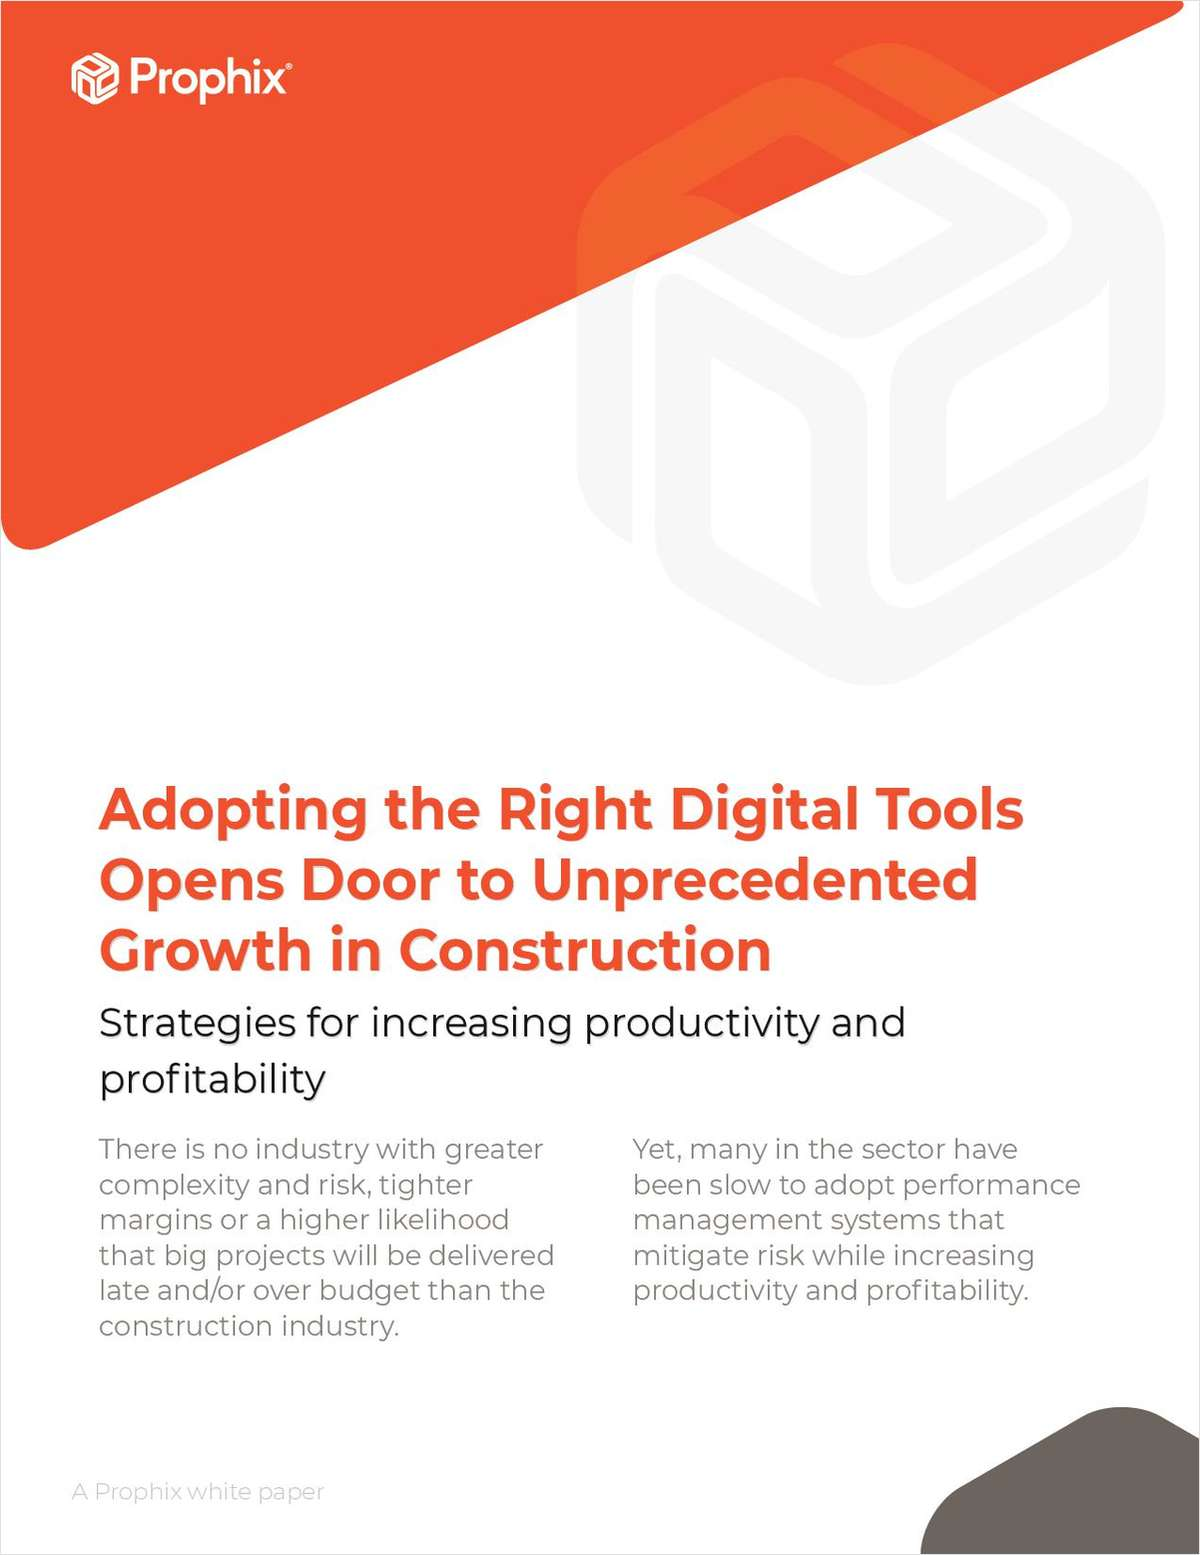 Adopting the Right Digital Tools Opens Door to Unprecedented Growth in Construction